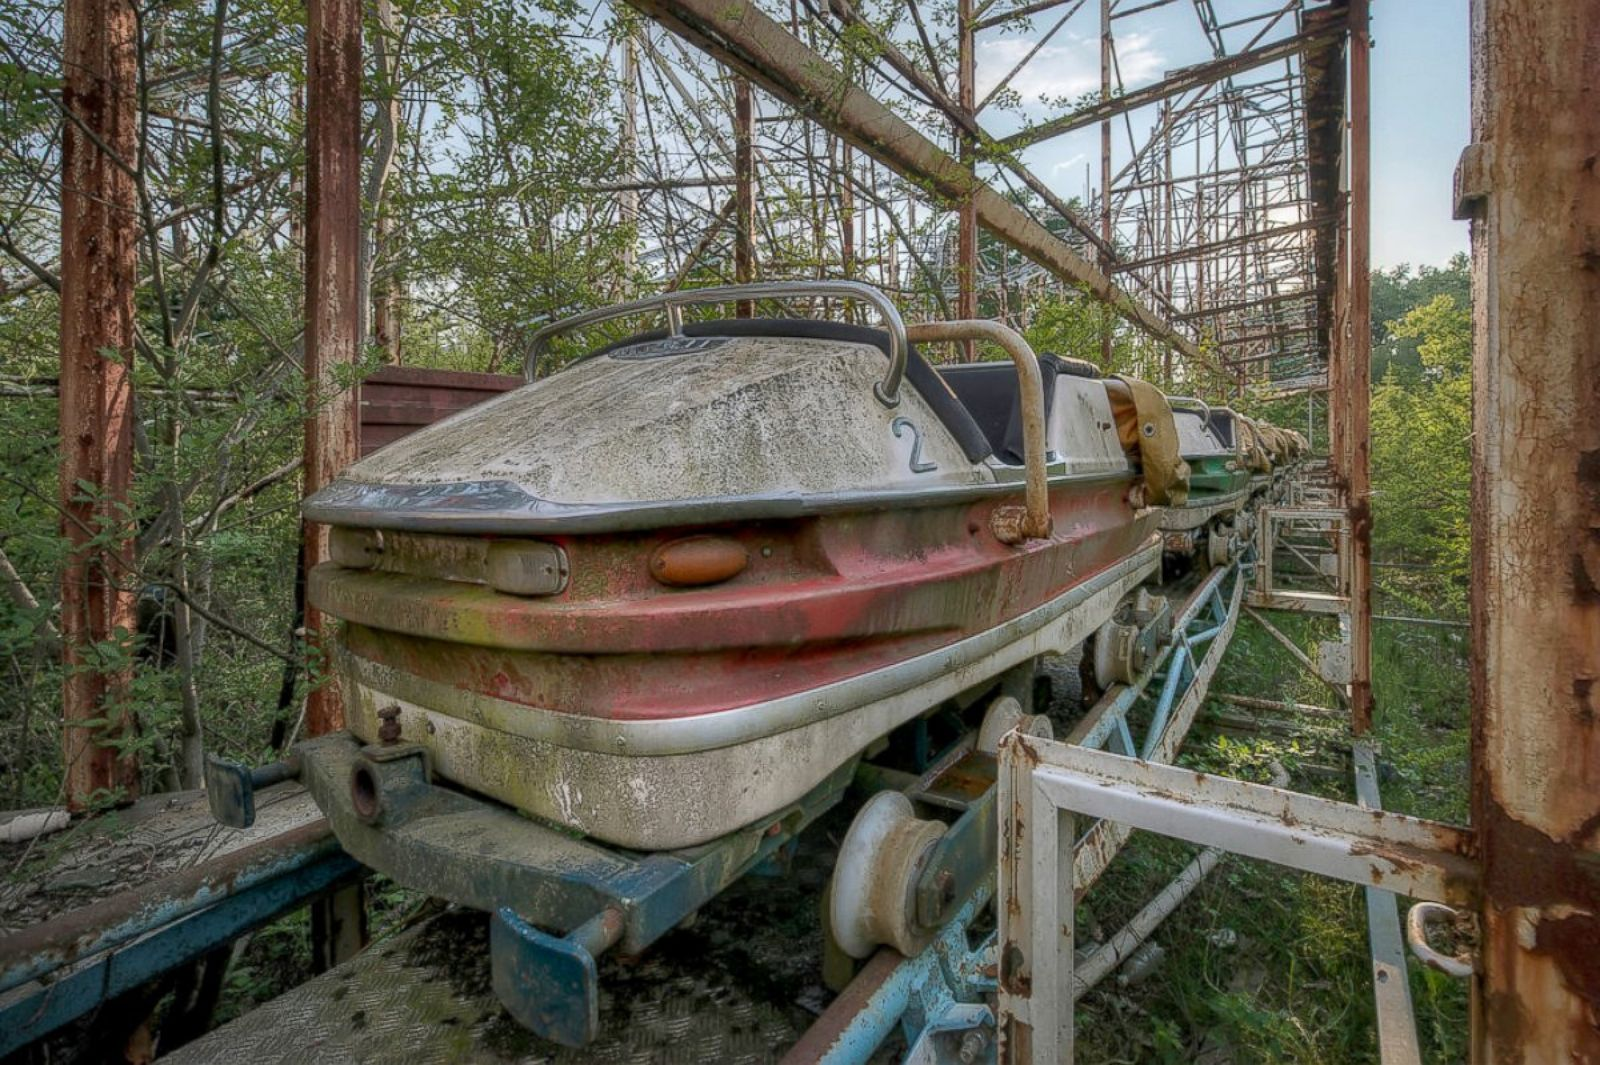 Abandoned places where life once boiled